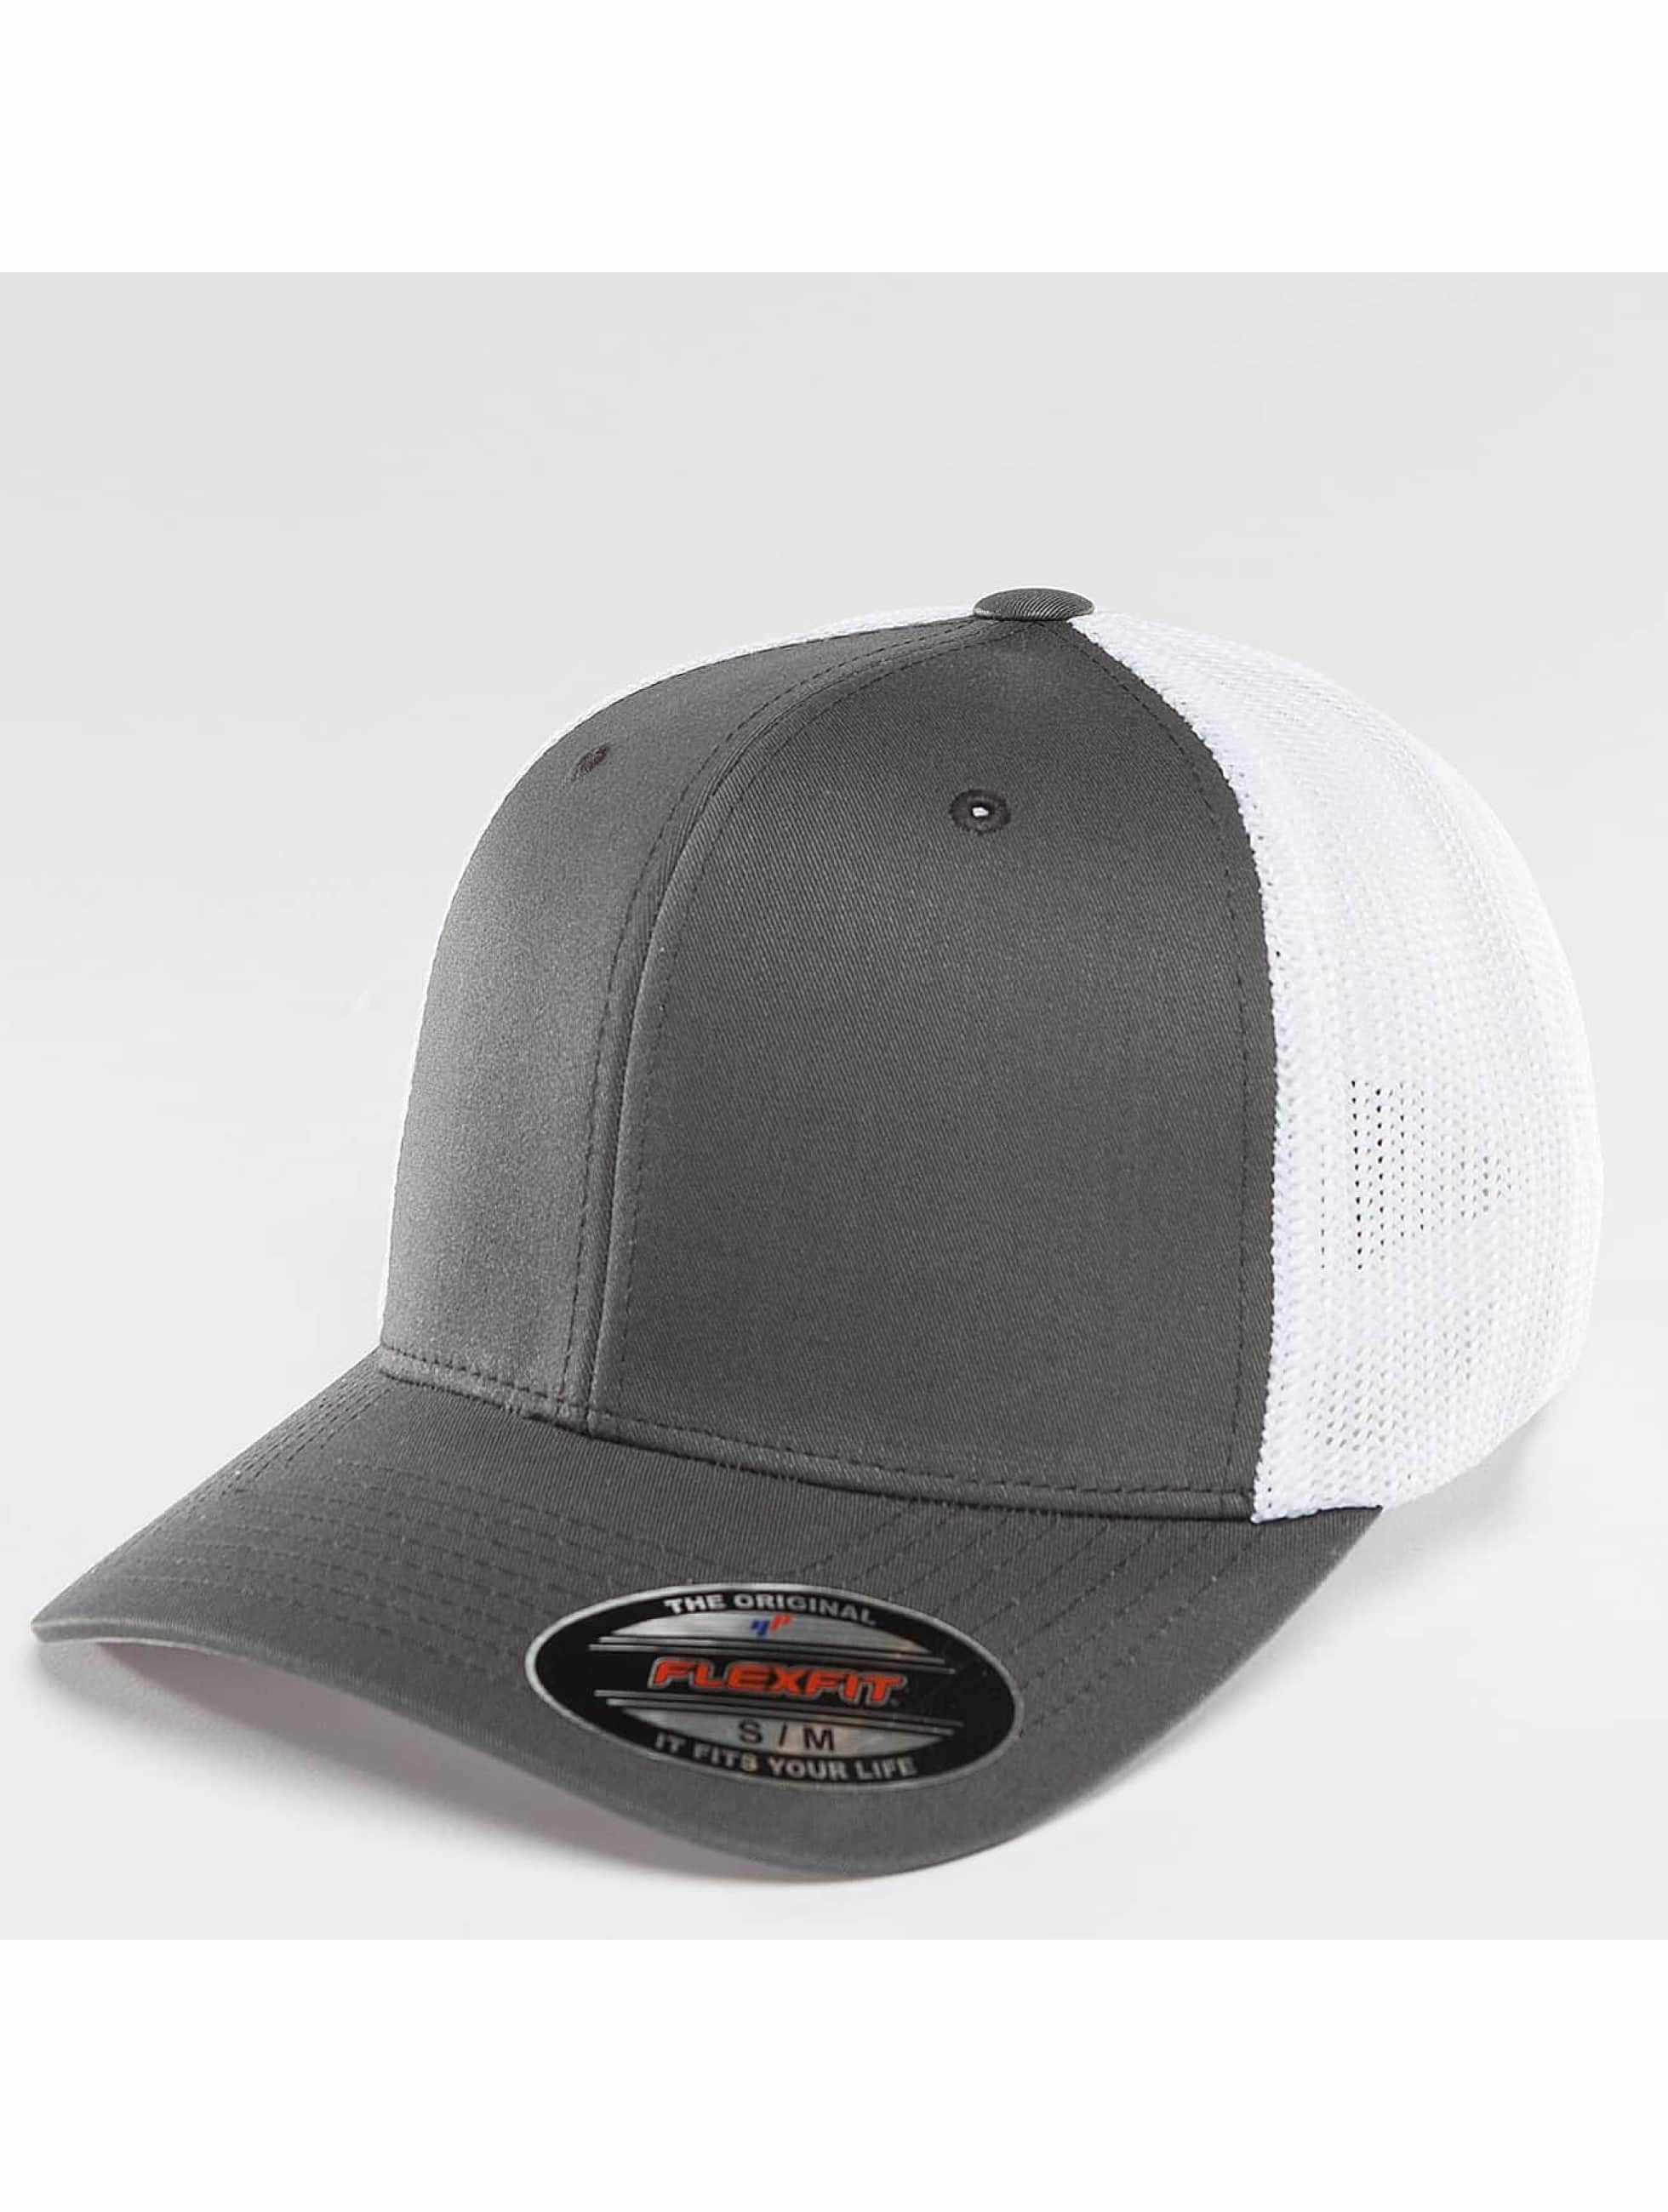 Flexfit Flexfitted Cap Mesh Cotton Twill Two Tone gray